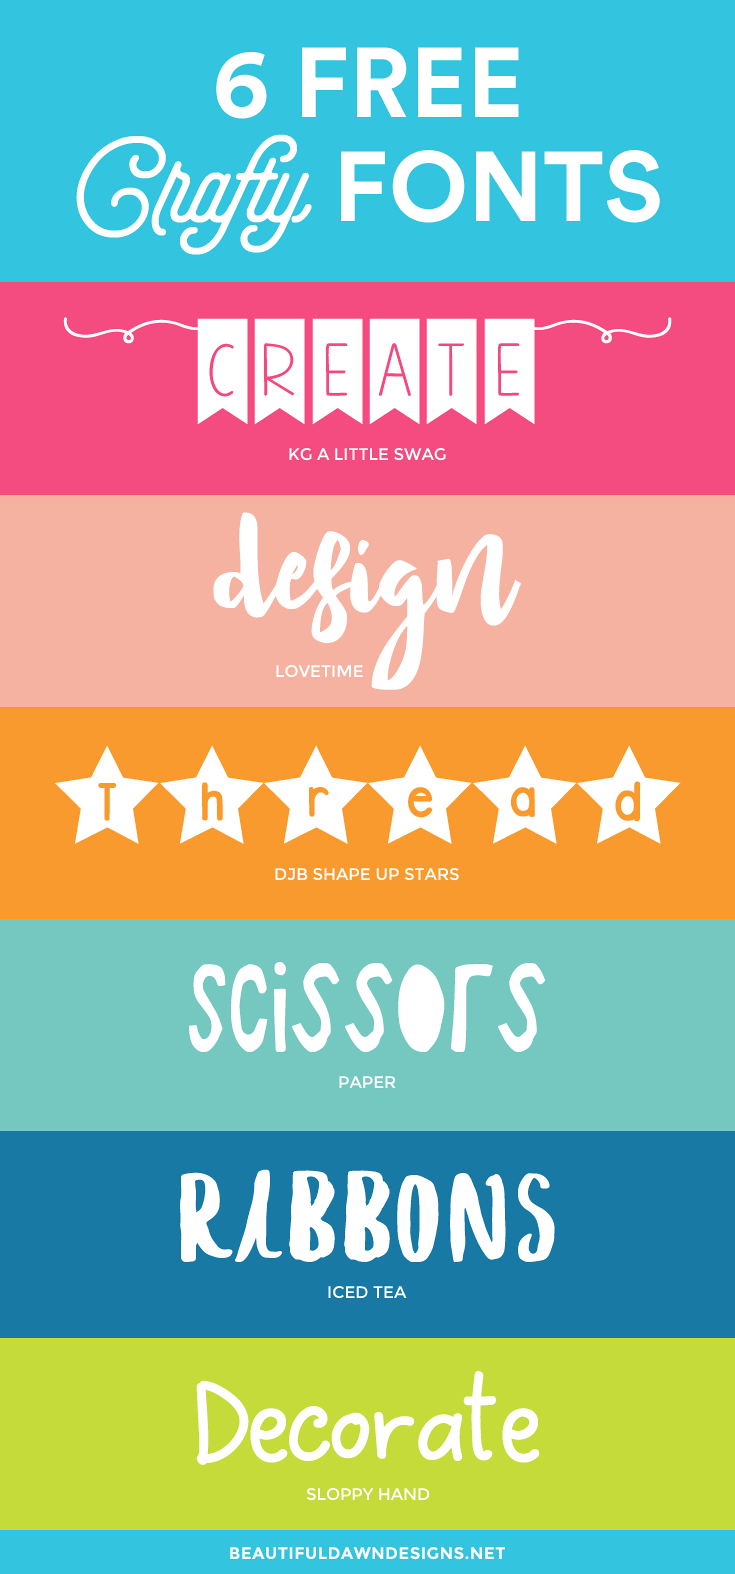 A collection of 6 free crafty fonts. Free fonts.